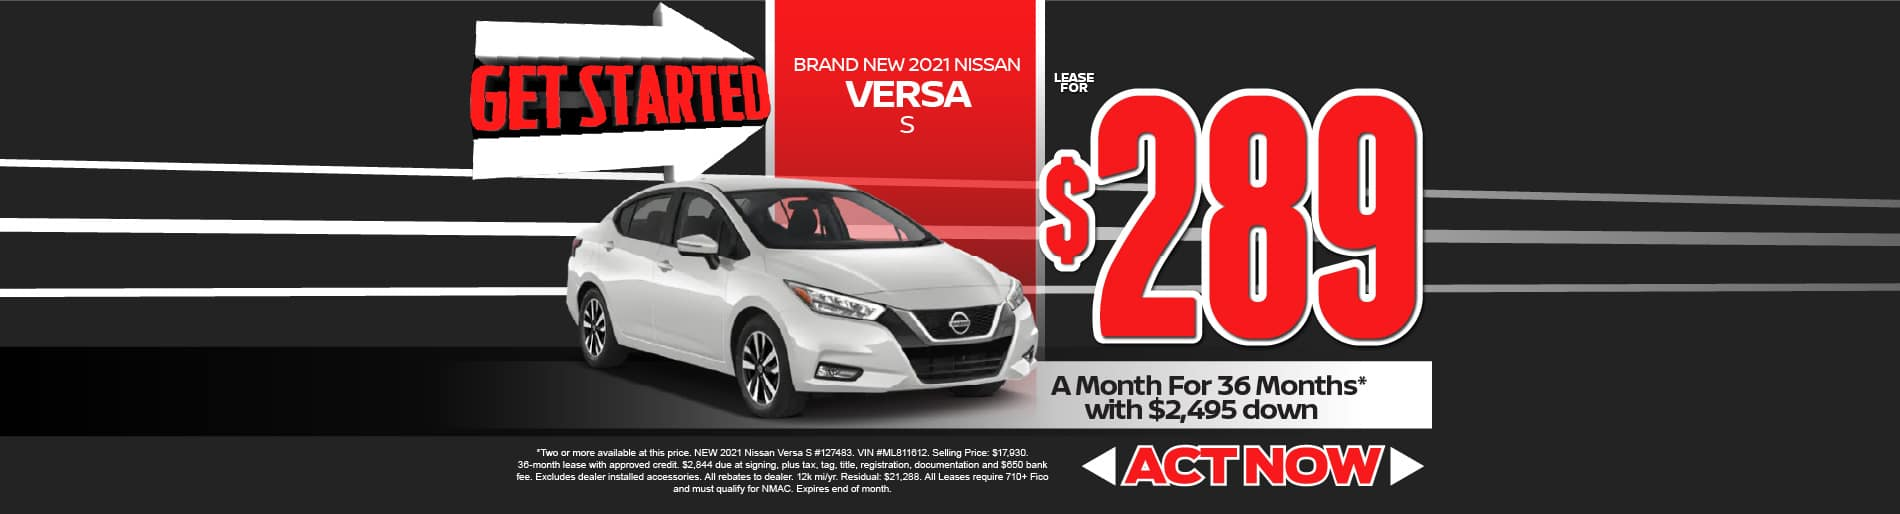 2021 Nissan Versa lease $289/month - click here to view inventory